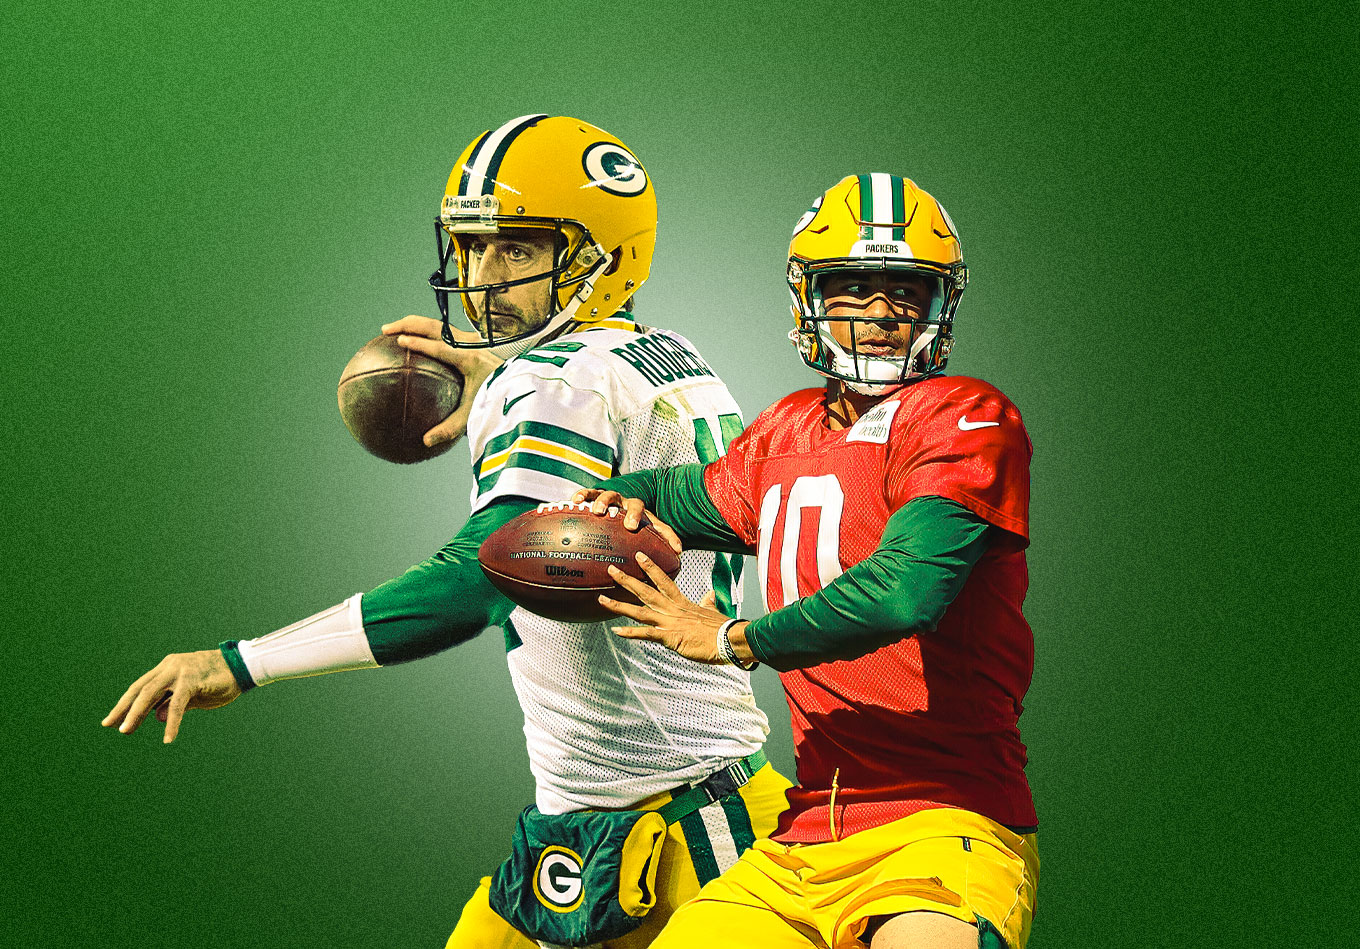 Bet on Love? What the Packers Might Look Like Without Rodgers